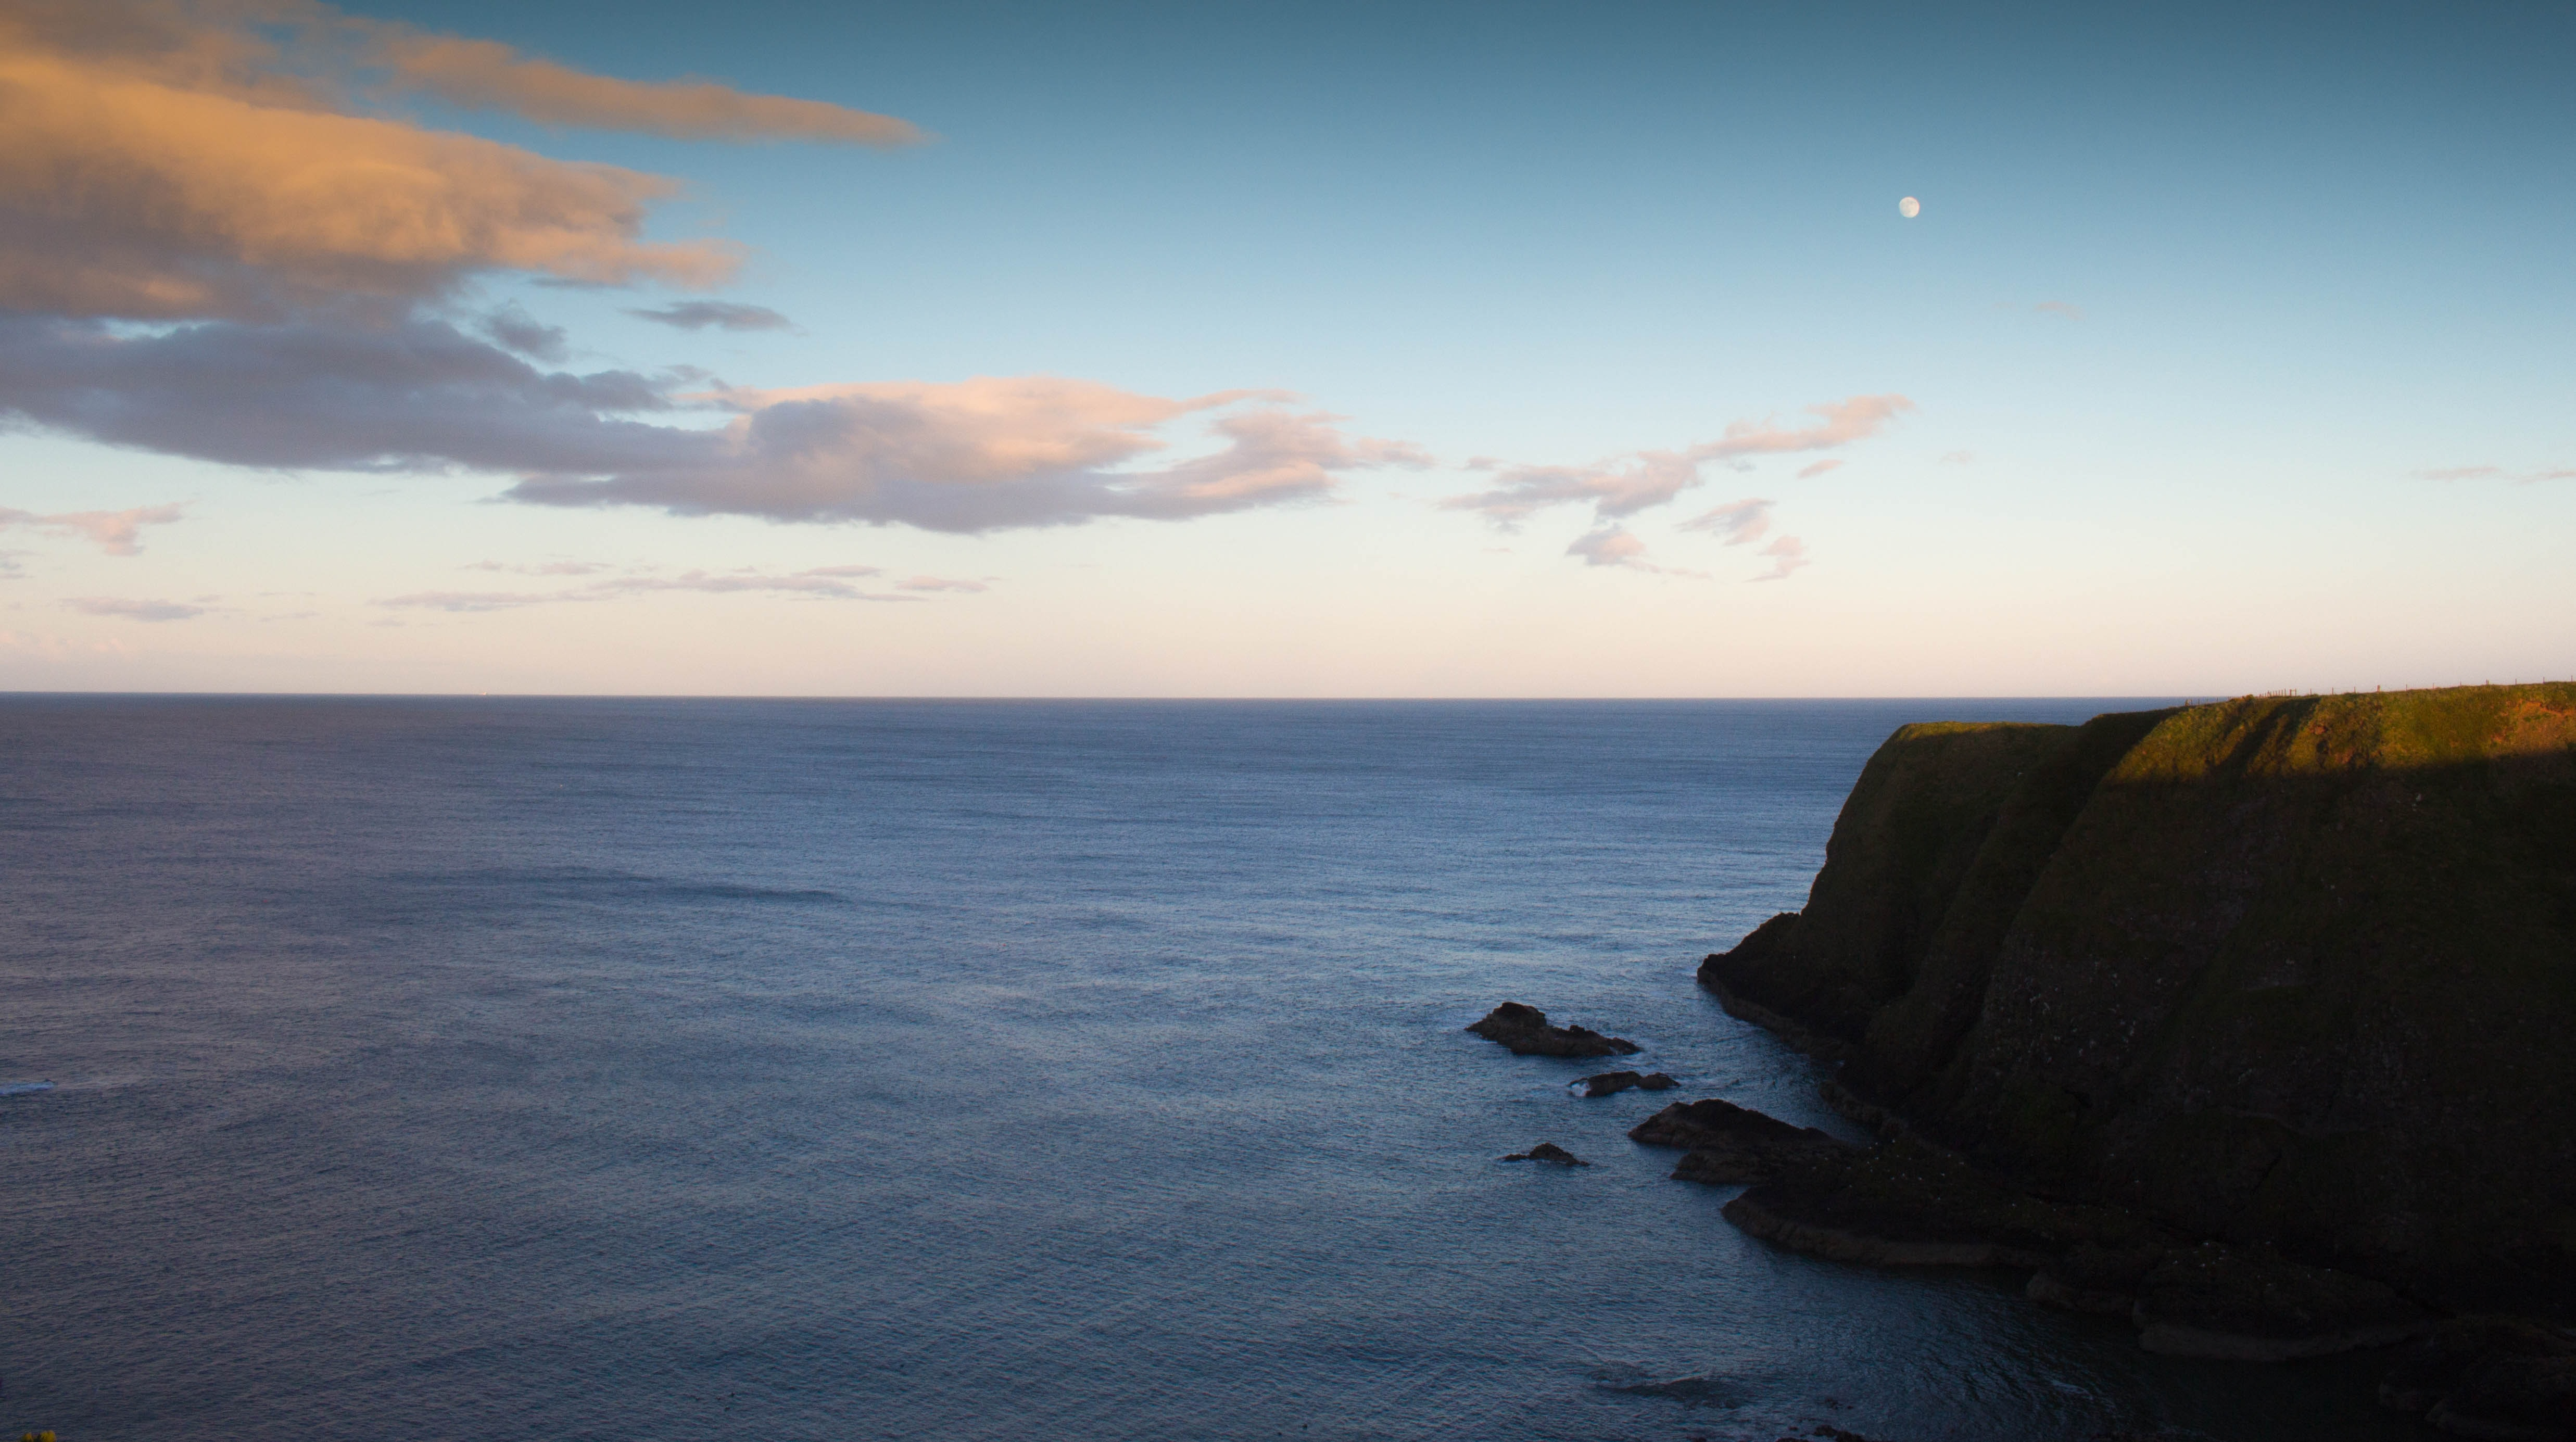 Green cliff above the calm sea with clouds and the moon in the background